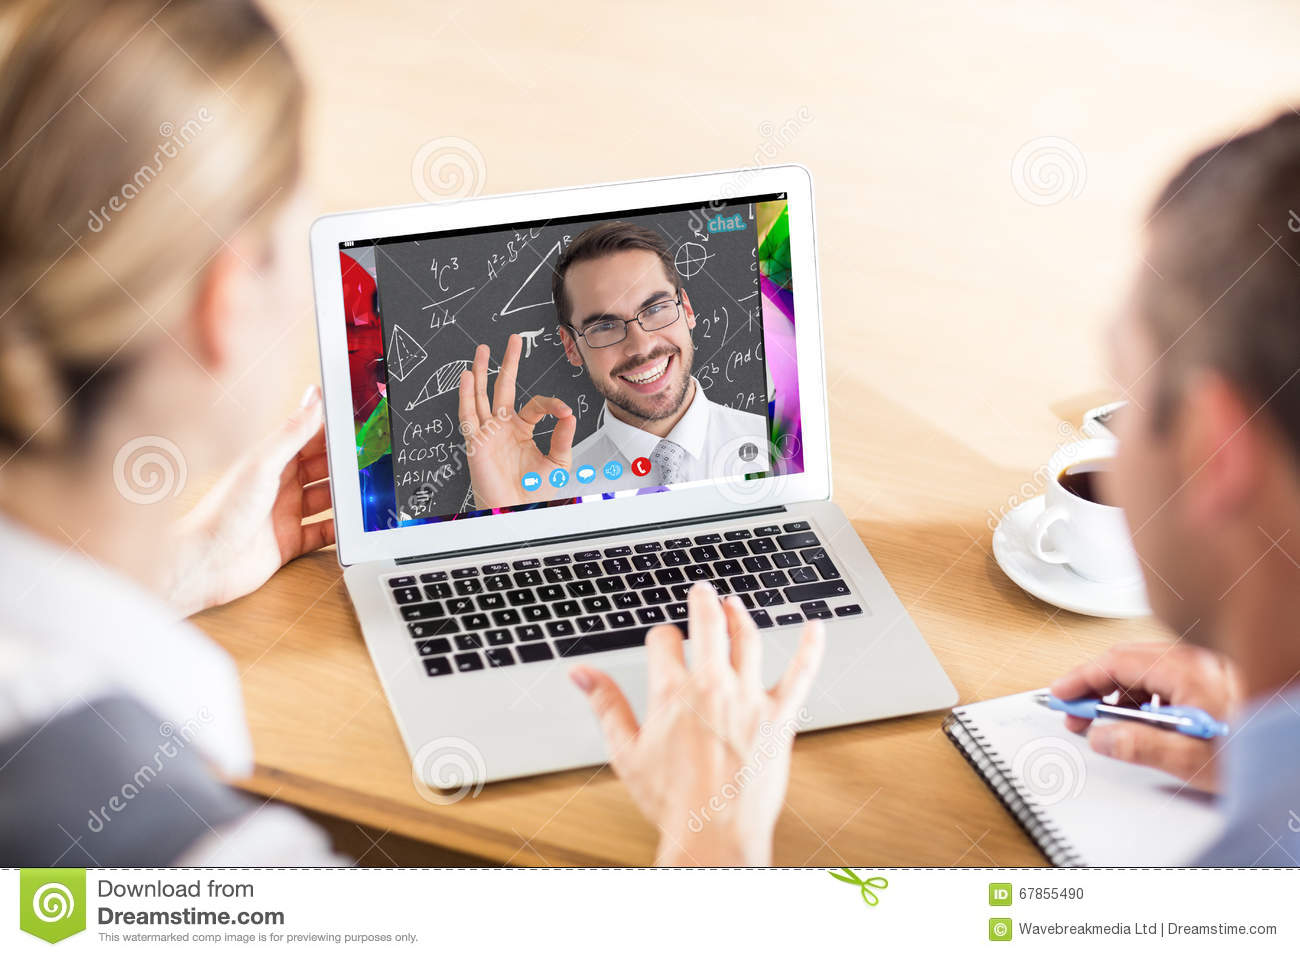 Composite image of happy businessman making okay gesture